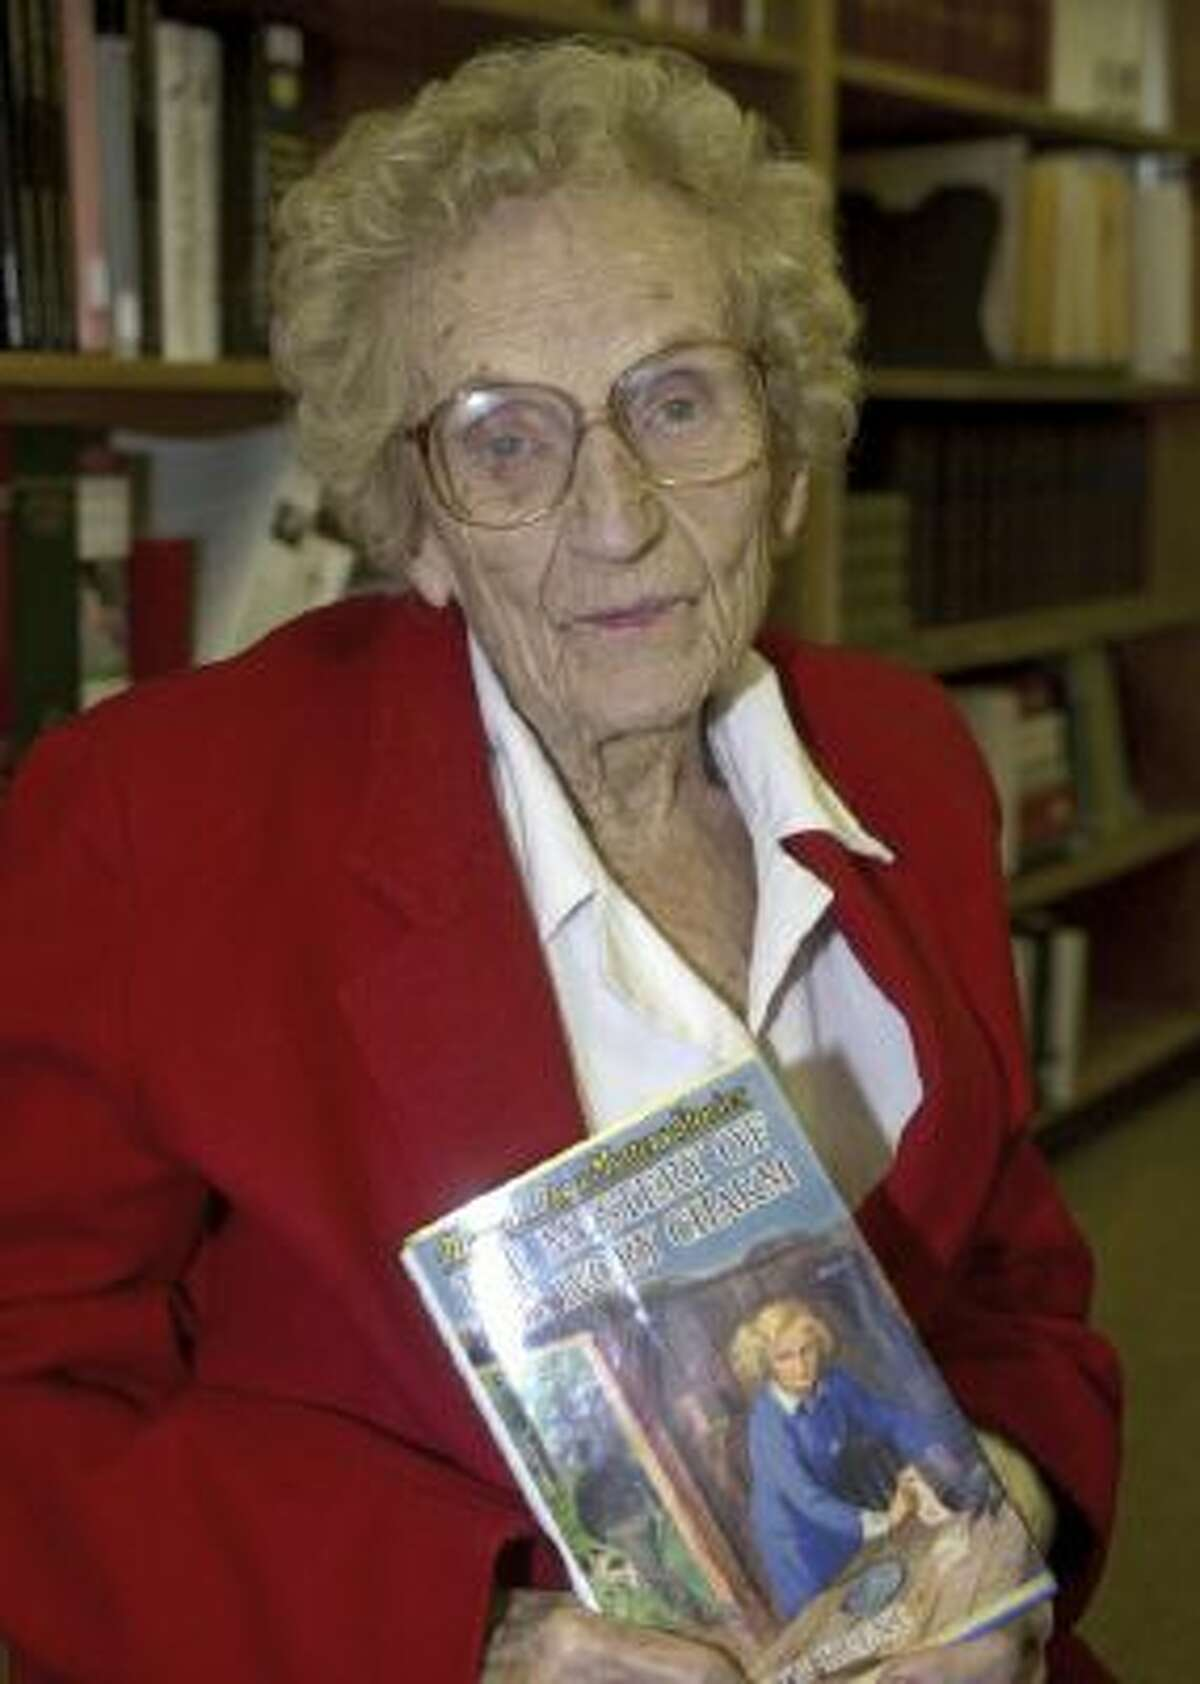 In this Tuesday, Dec. 18, 2001 file photo shows Millie Benson holding up one of the Nancy Drew mystery books in Toledo, Ohio.